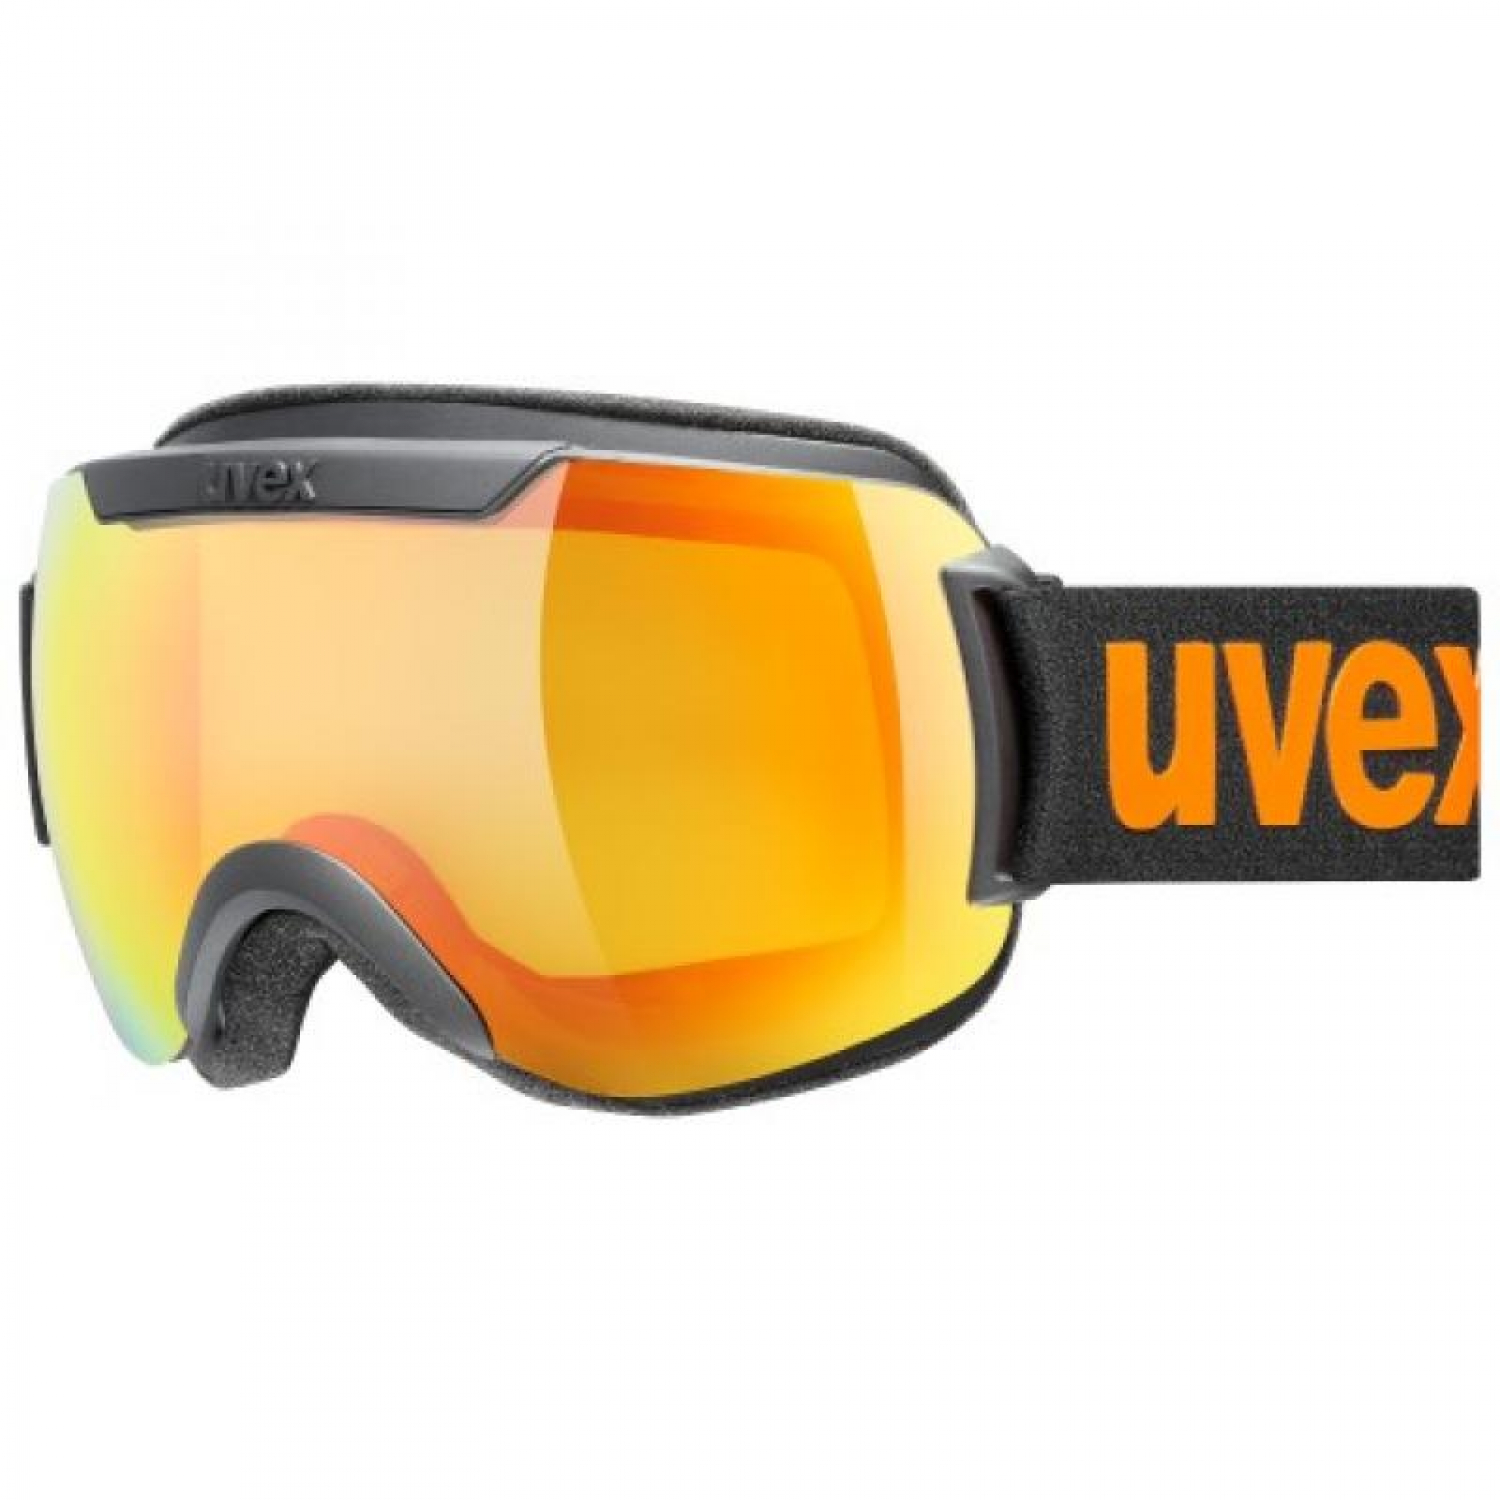 Uvex downhill 2000 CV Skibrille blk S/L orange-yellow